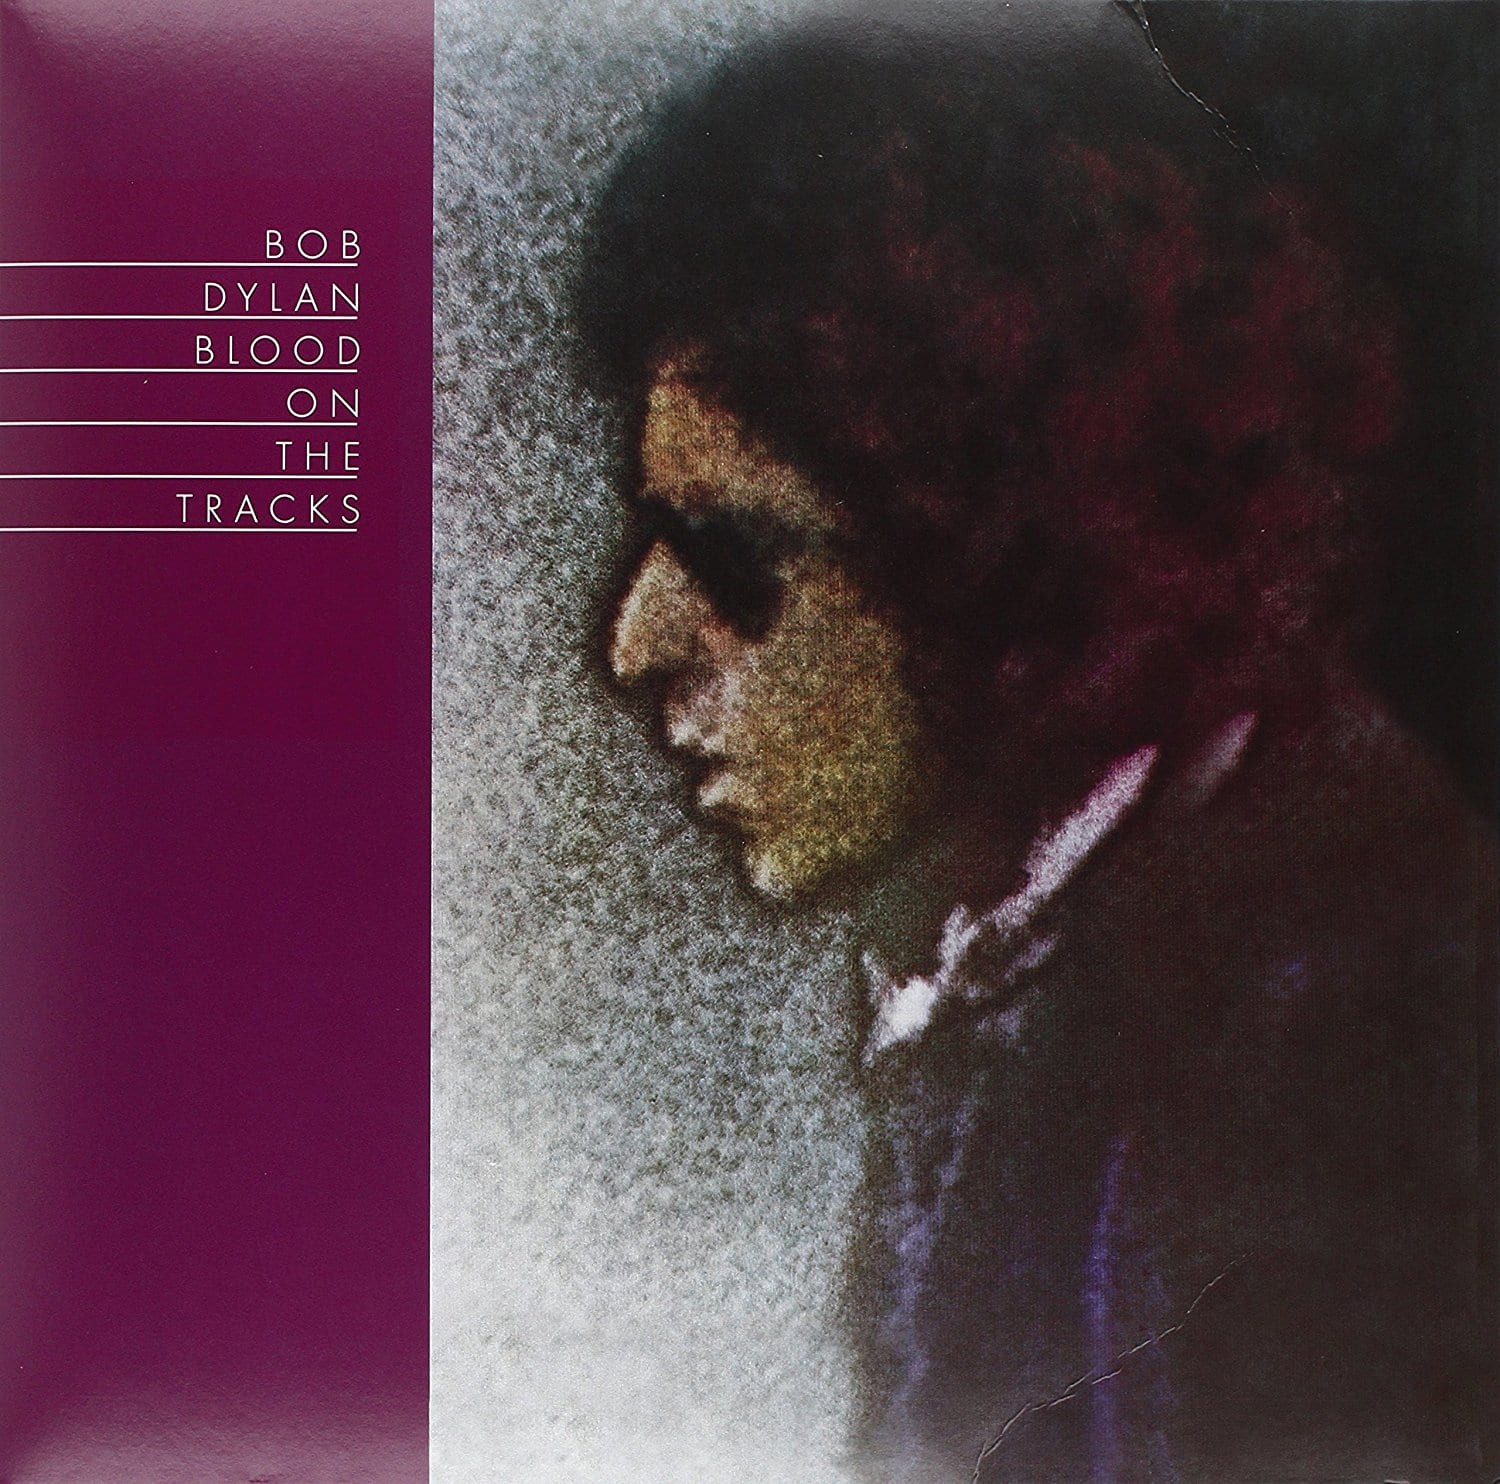 National Album Day: Blood On The Tracks by Bob Dylan